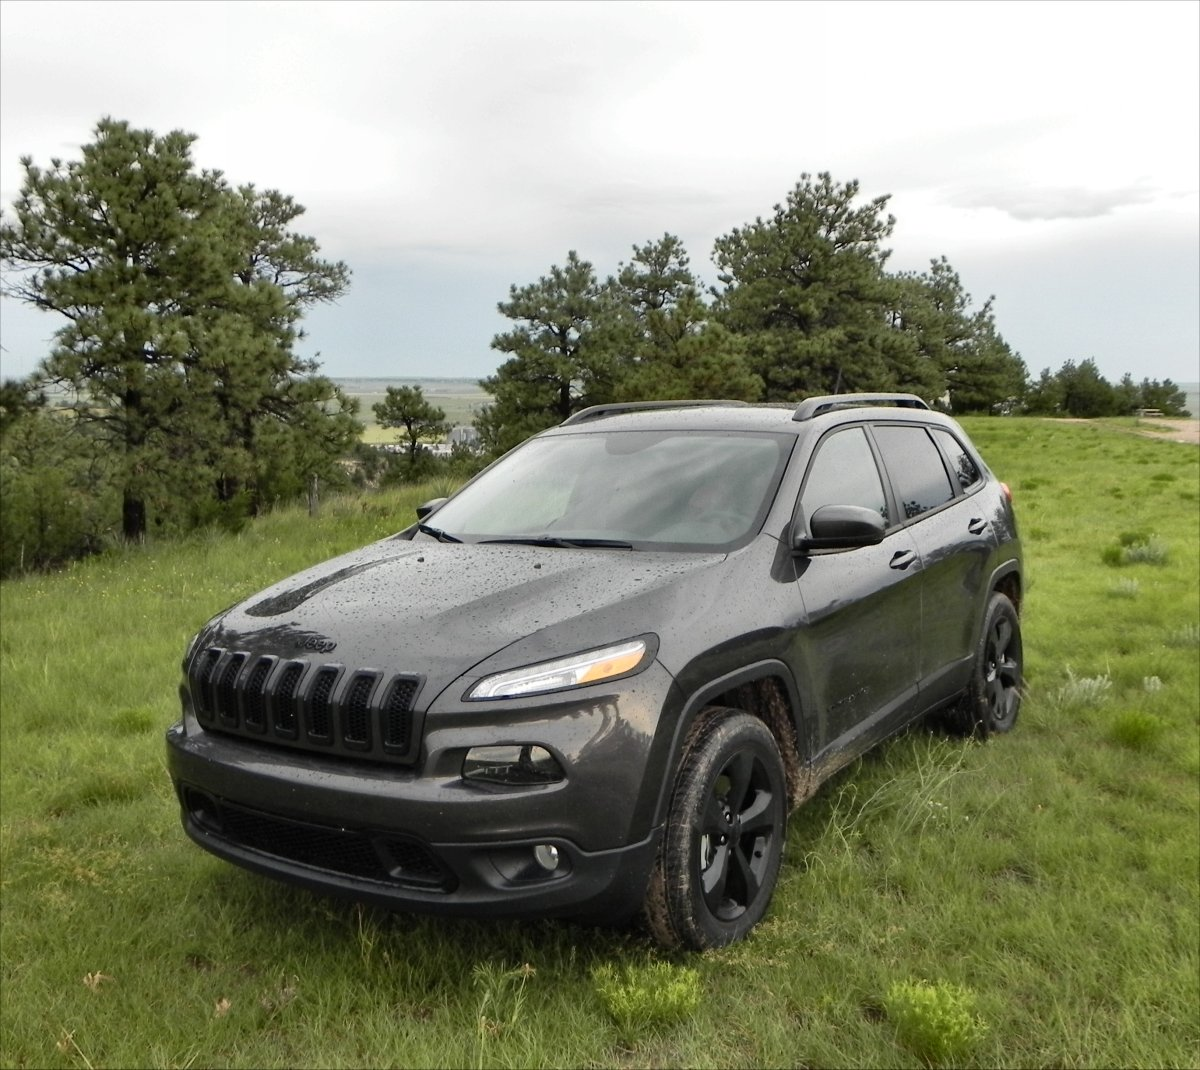 2015 jeep cherokee latitude gallery aaron on autos. Black Bedroom Furniture Sets. Home Design Ideas